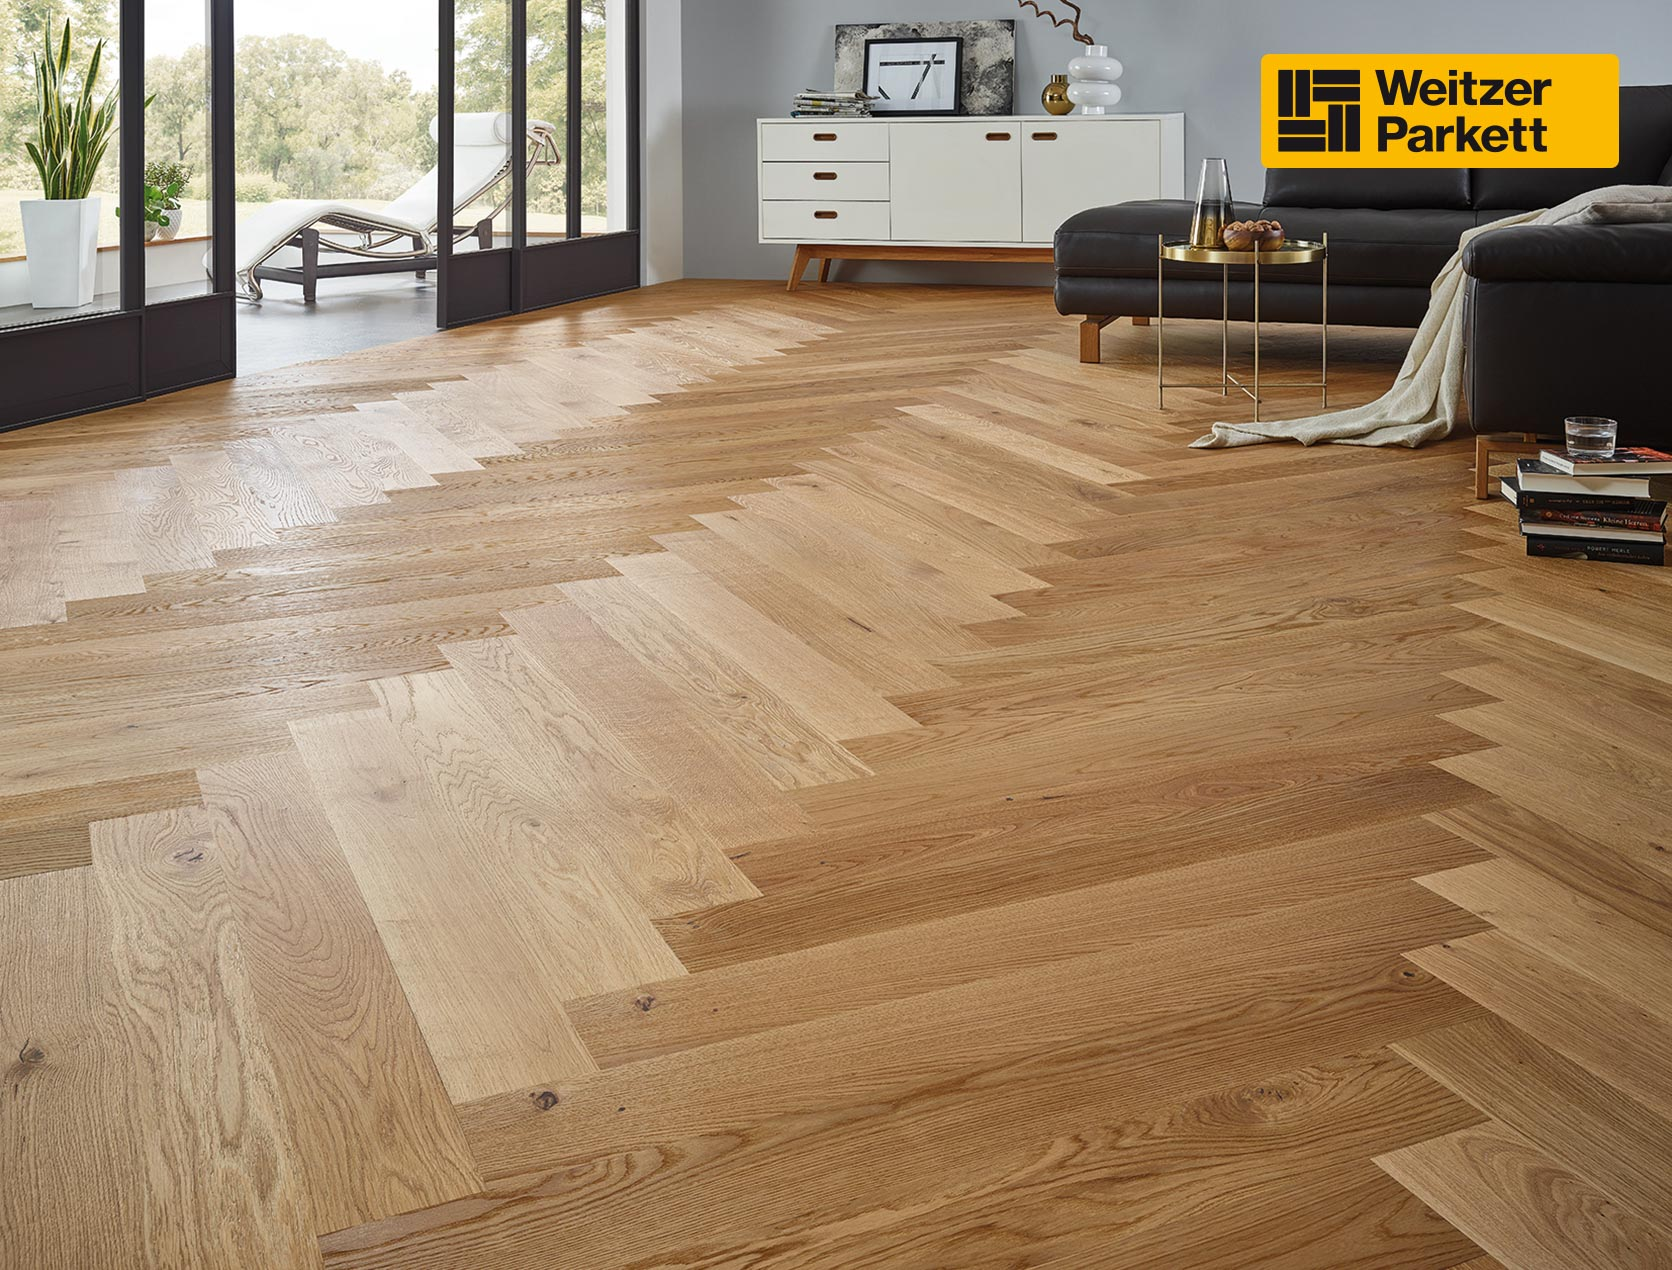 Wideboard-Appearance_4100_Oak_lively_Herringbone_27686.jpg